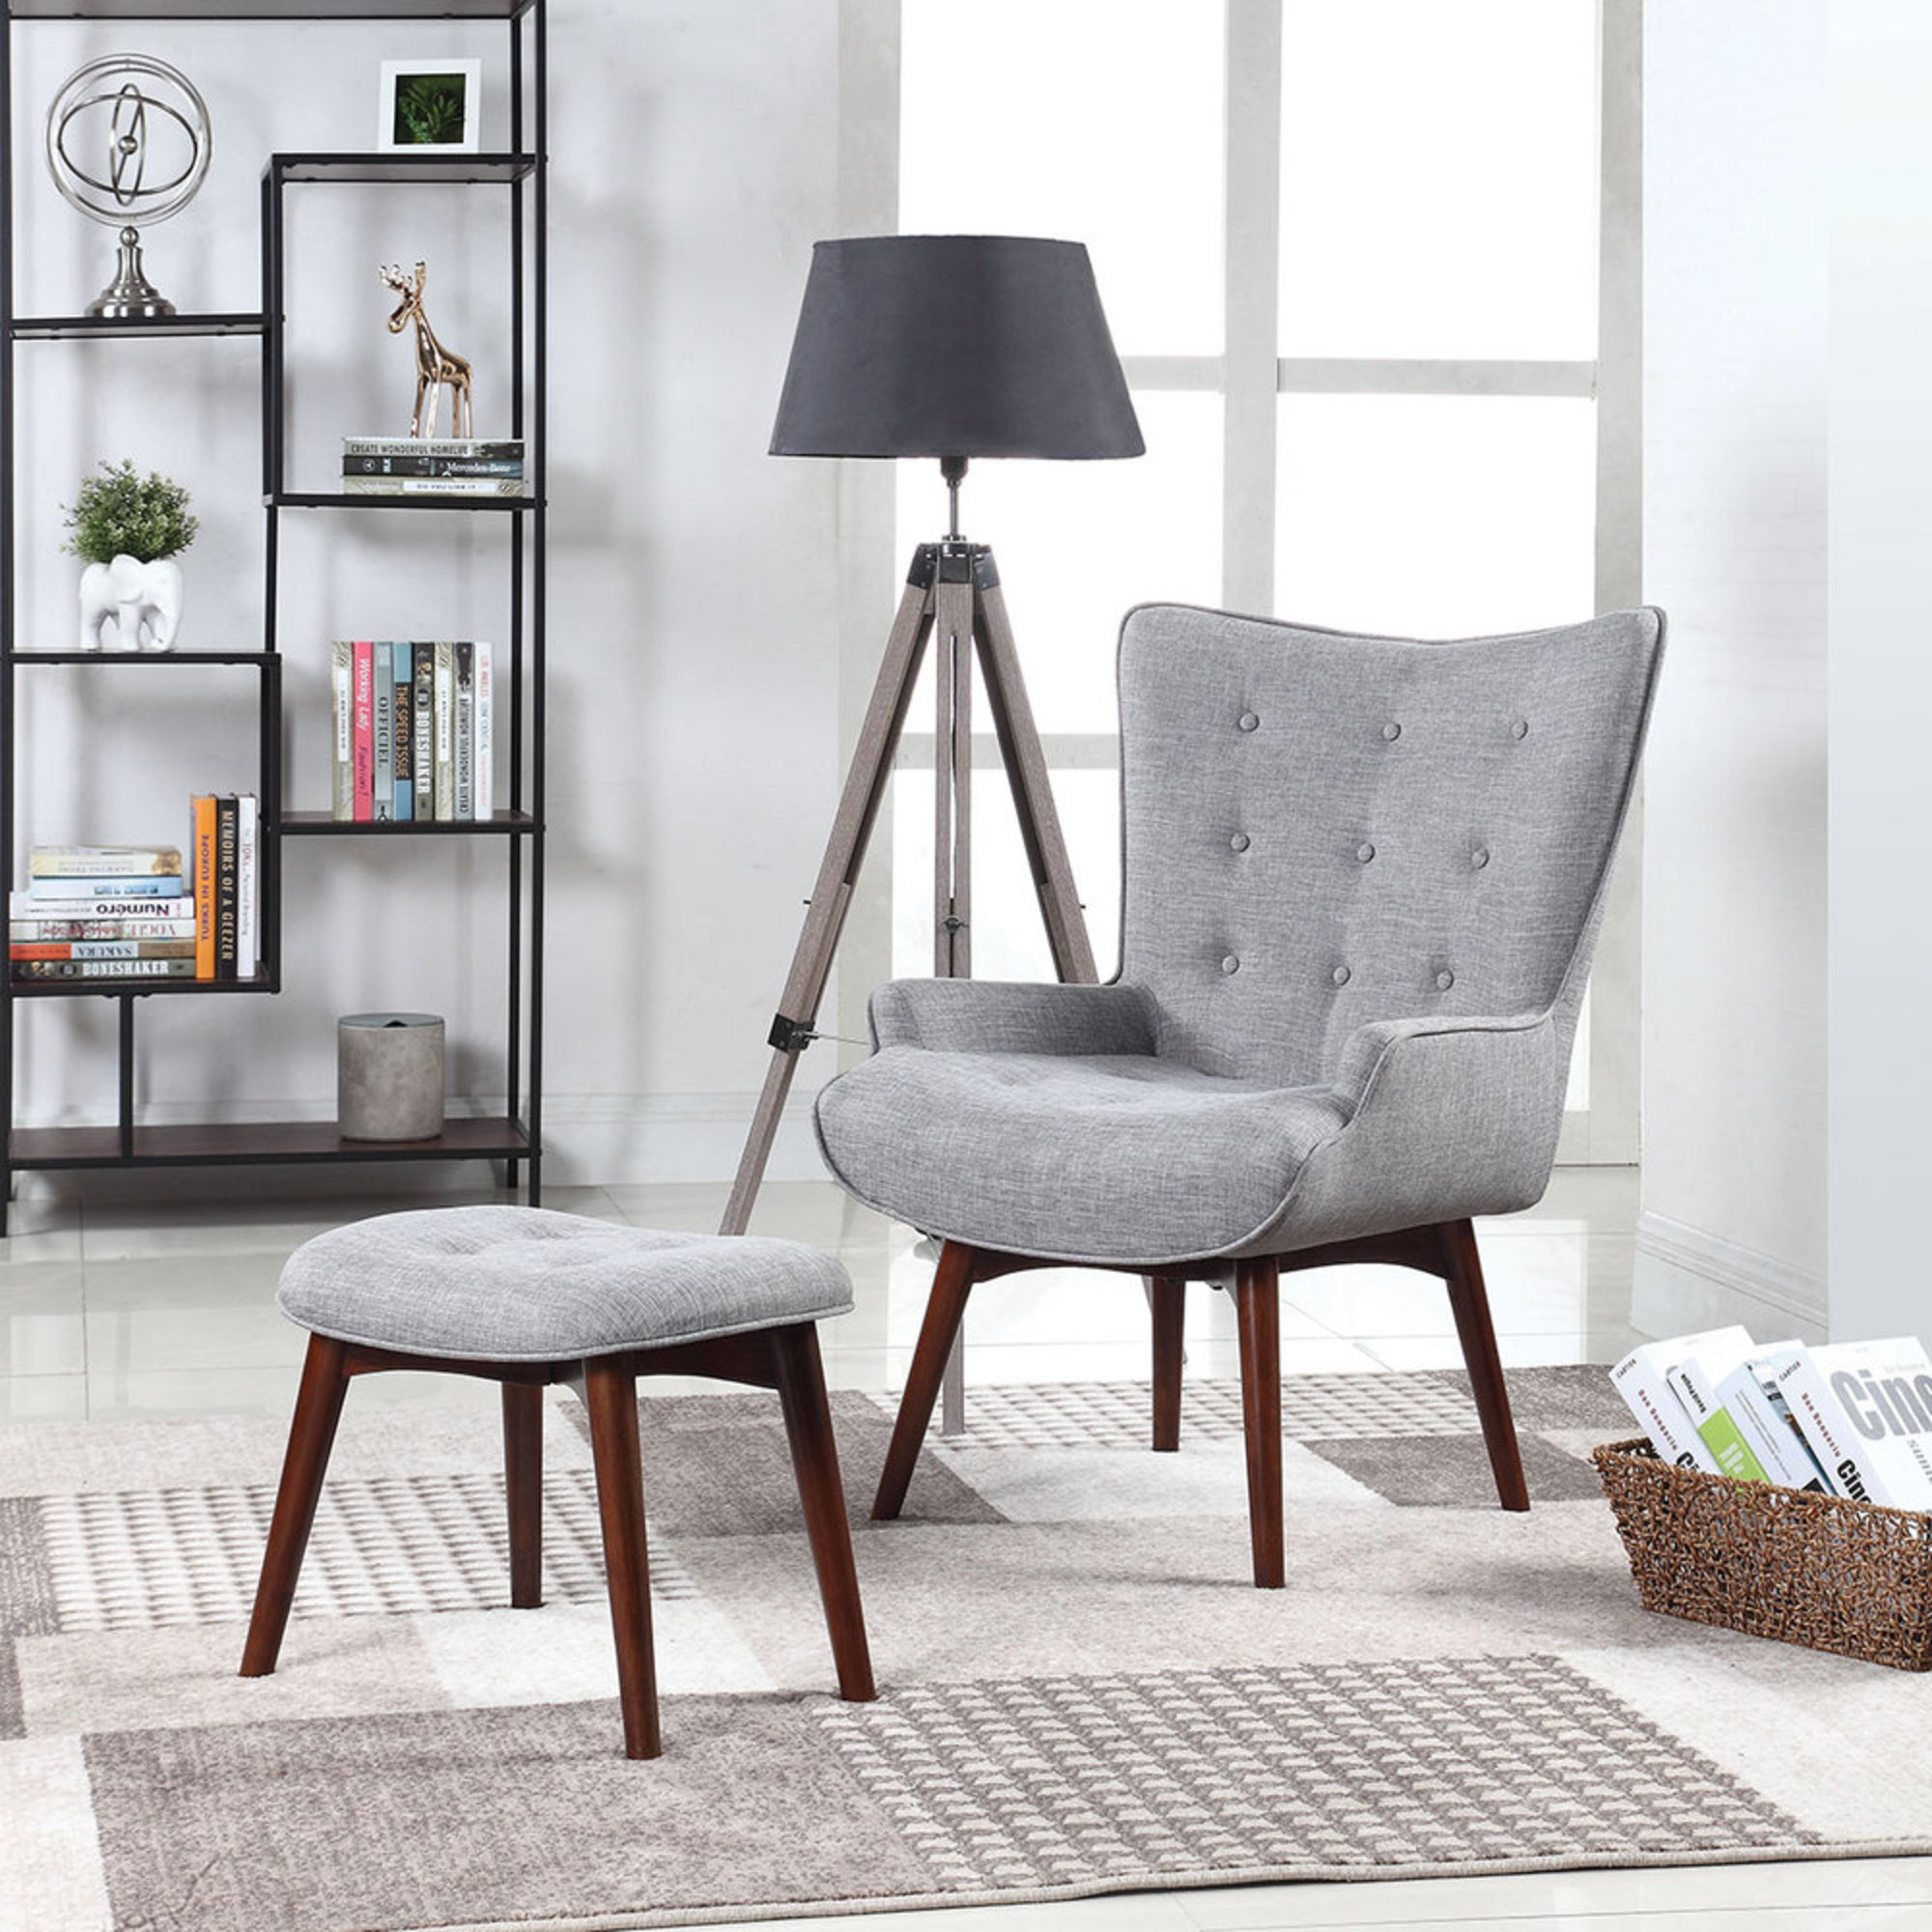 Scott Living Accent Chair With Ottoman (11)  Accent Chairs